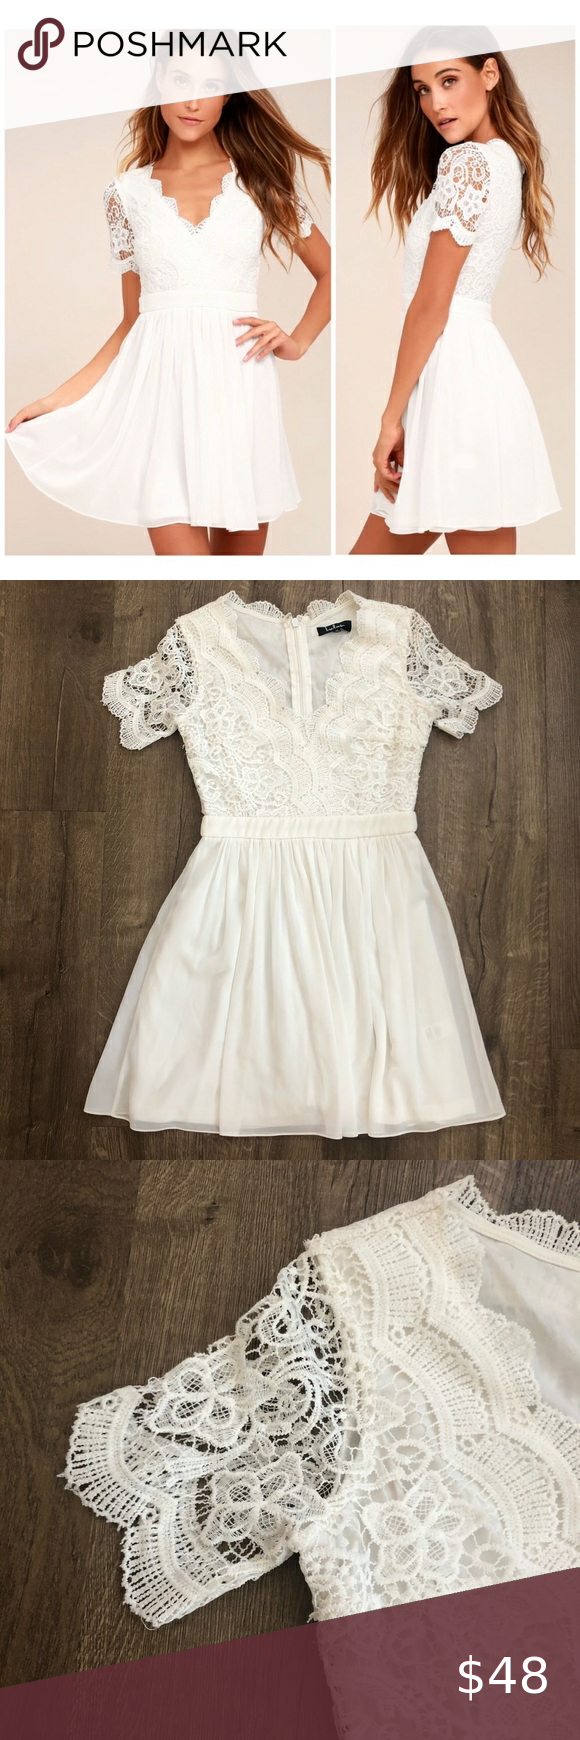 Lulu S White Angel In Disguise Lace Skater Dress M Lace Skater Dress White Lace Skater Dress Dresses [ 1740 x 580 Pixel ]